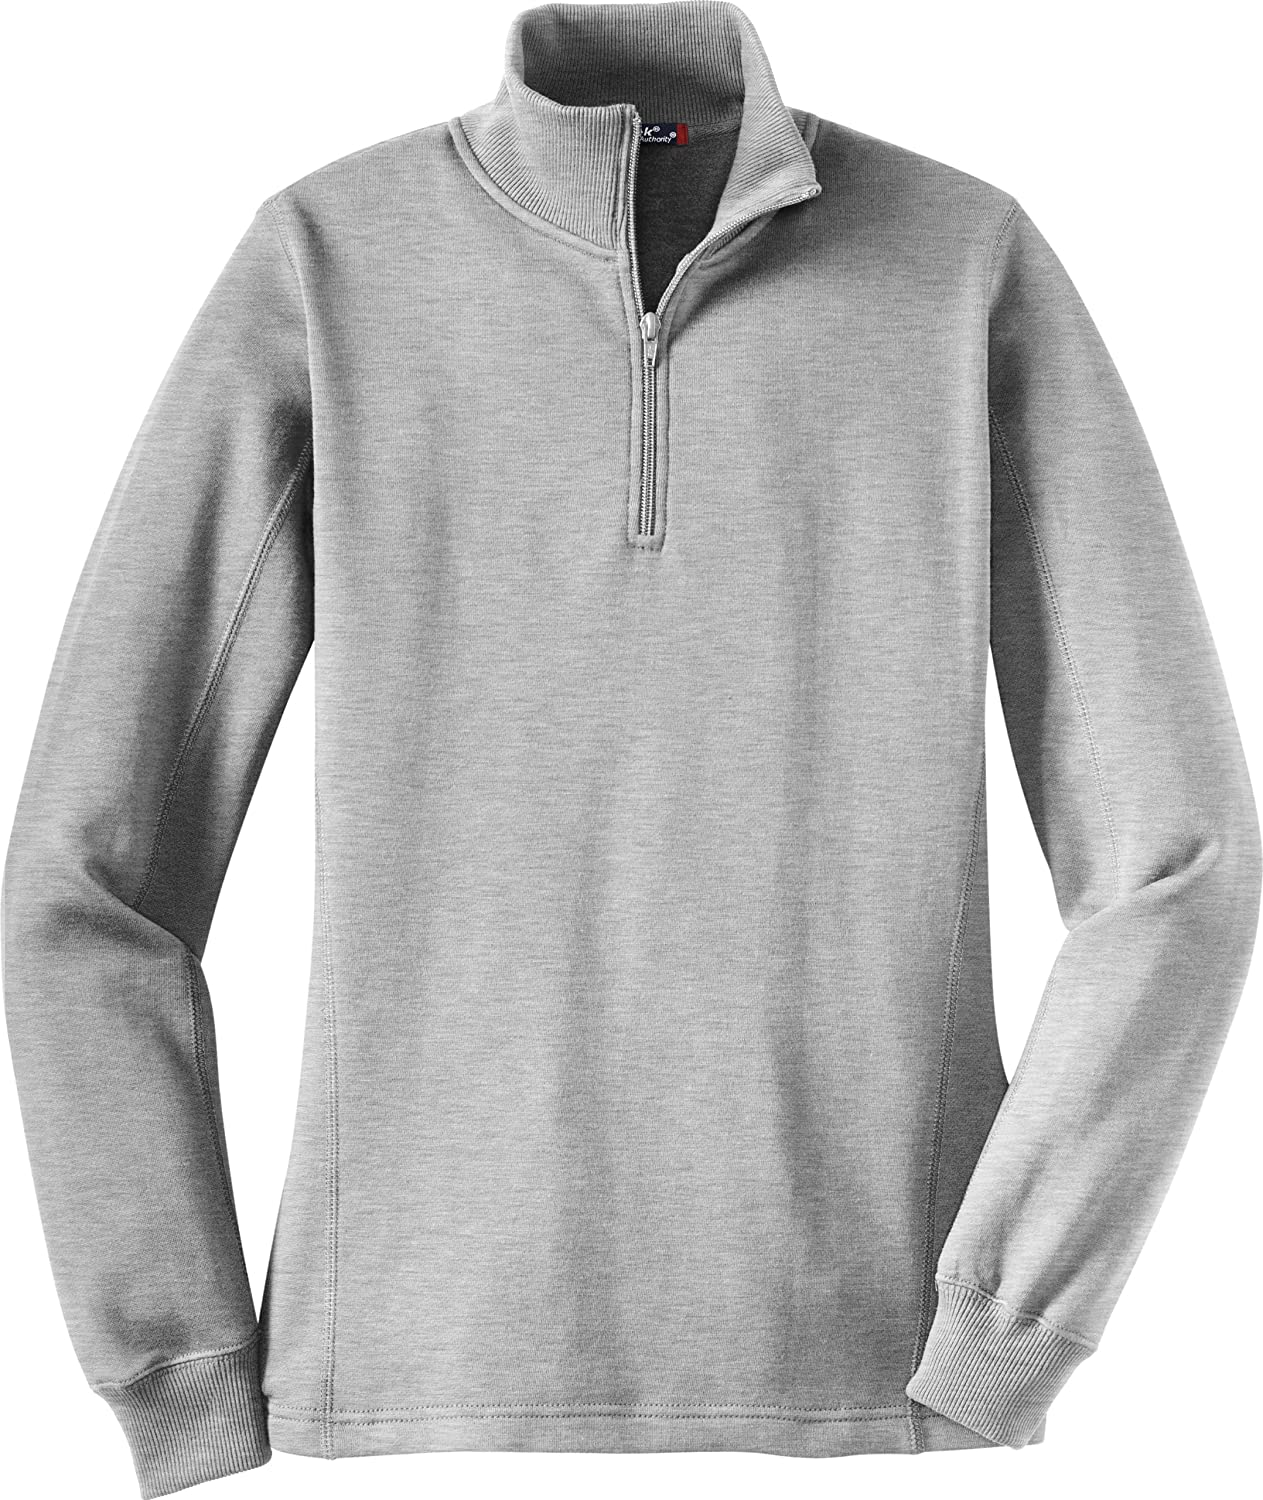 - Sport-Tek Women's 1/4 Zip Sweatshirt At Amazon Women's Clothing Store: